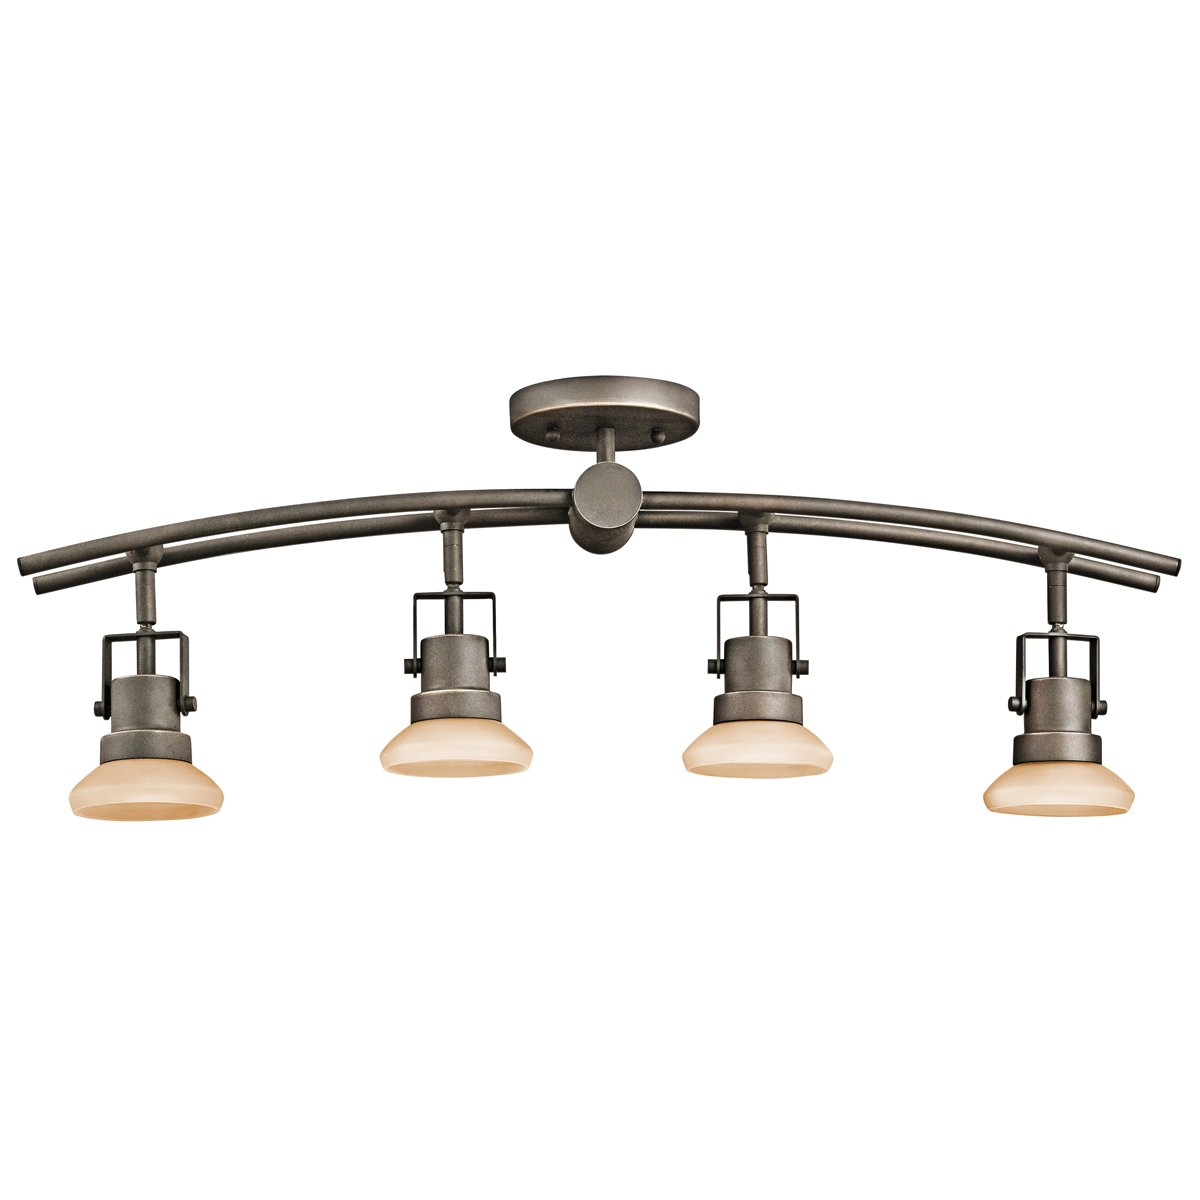 Kichler 7755OZ Structures 4-Light Fixed Directional Rail Light, Olde Bronze with Light Umber Glass